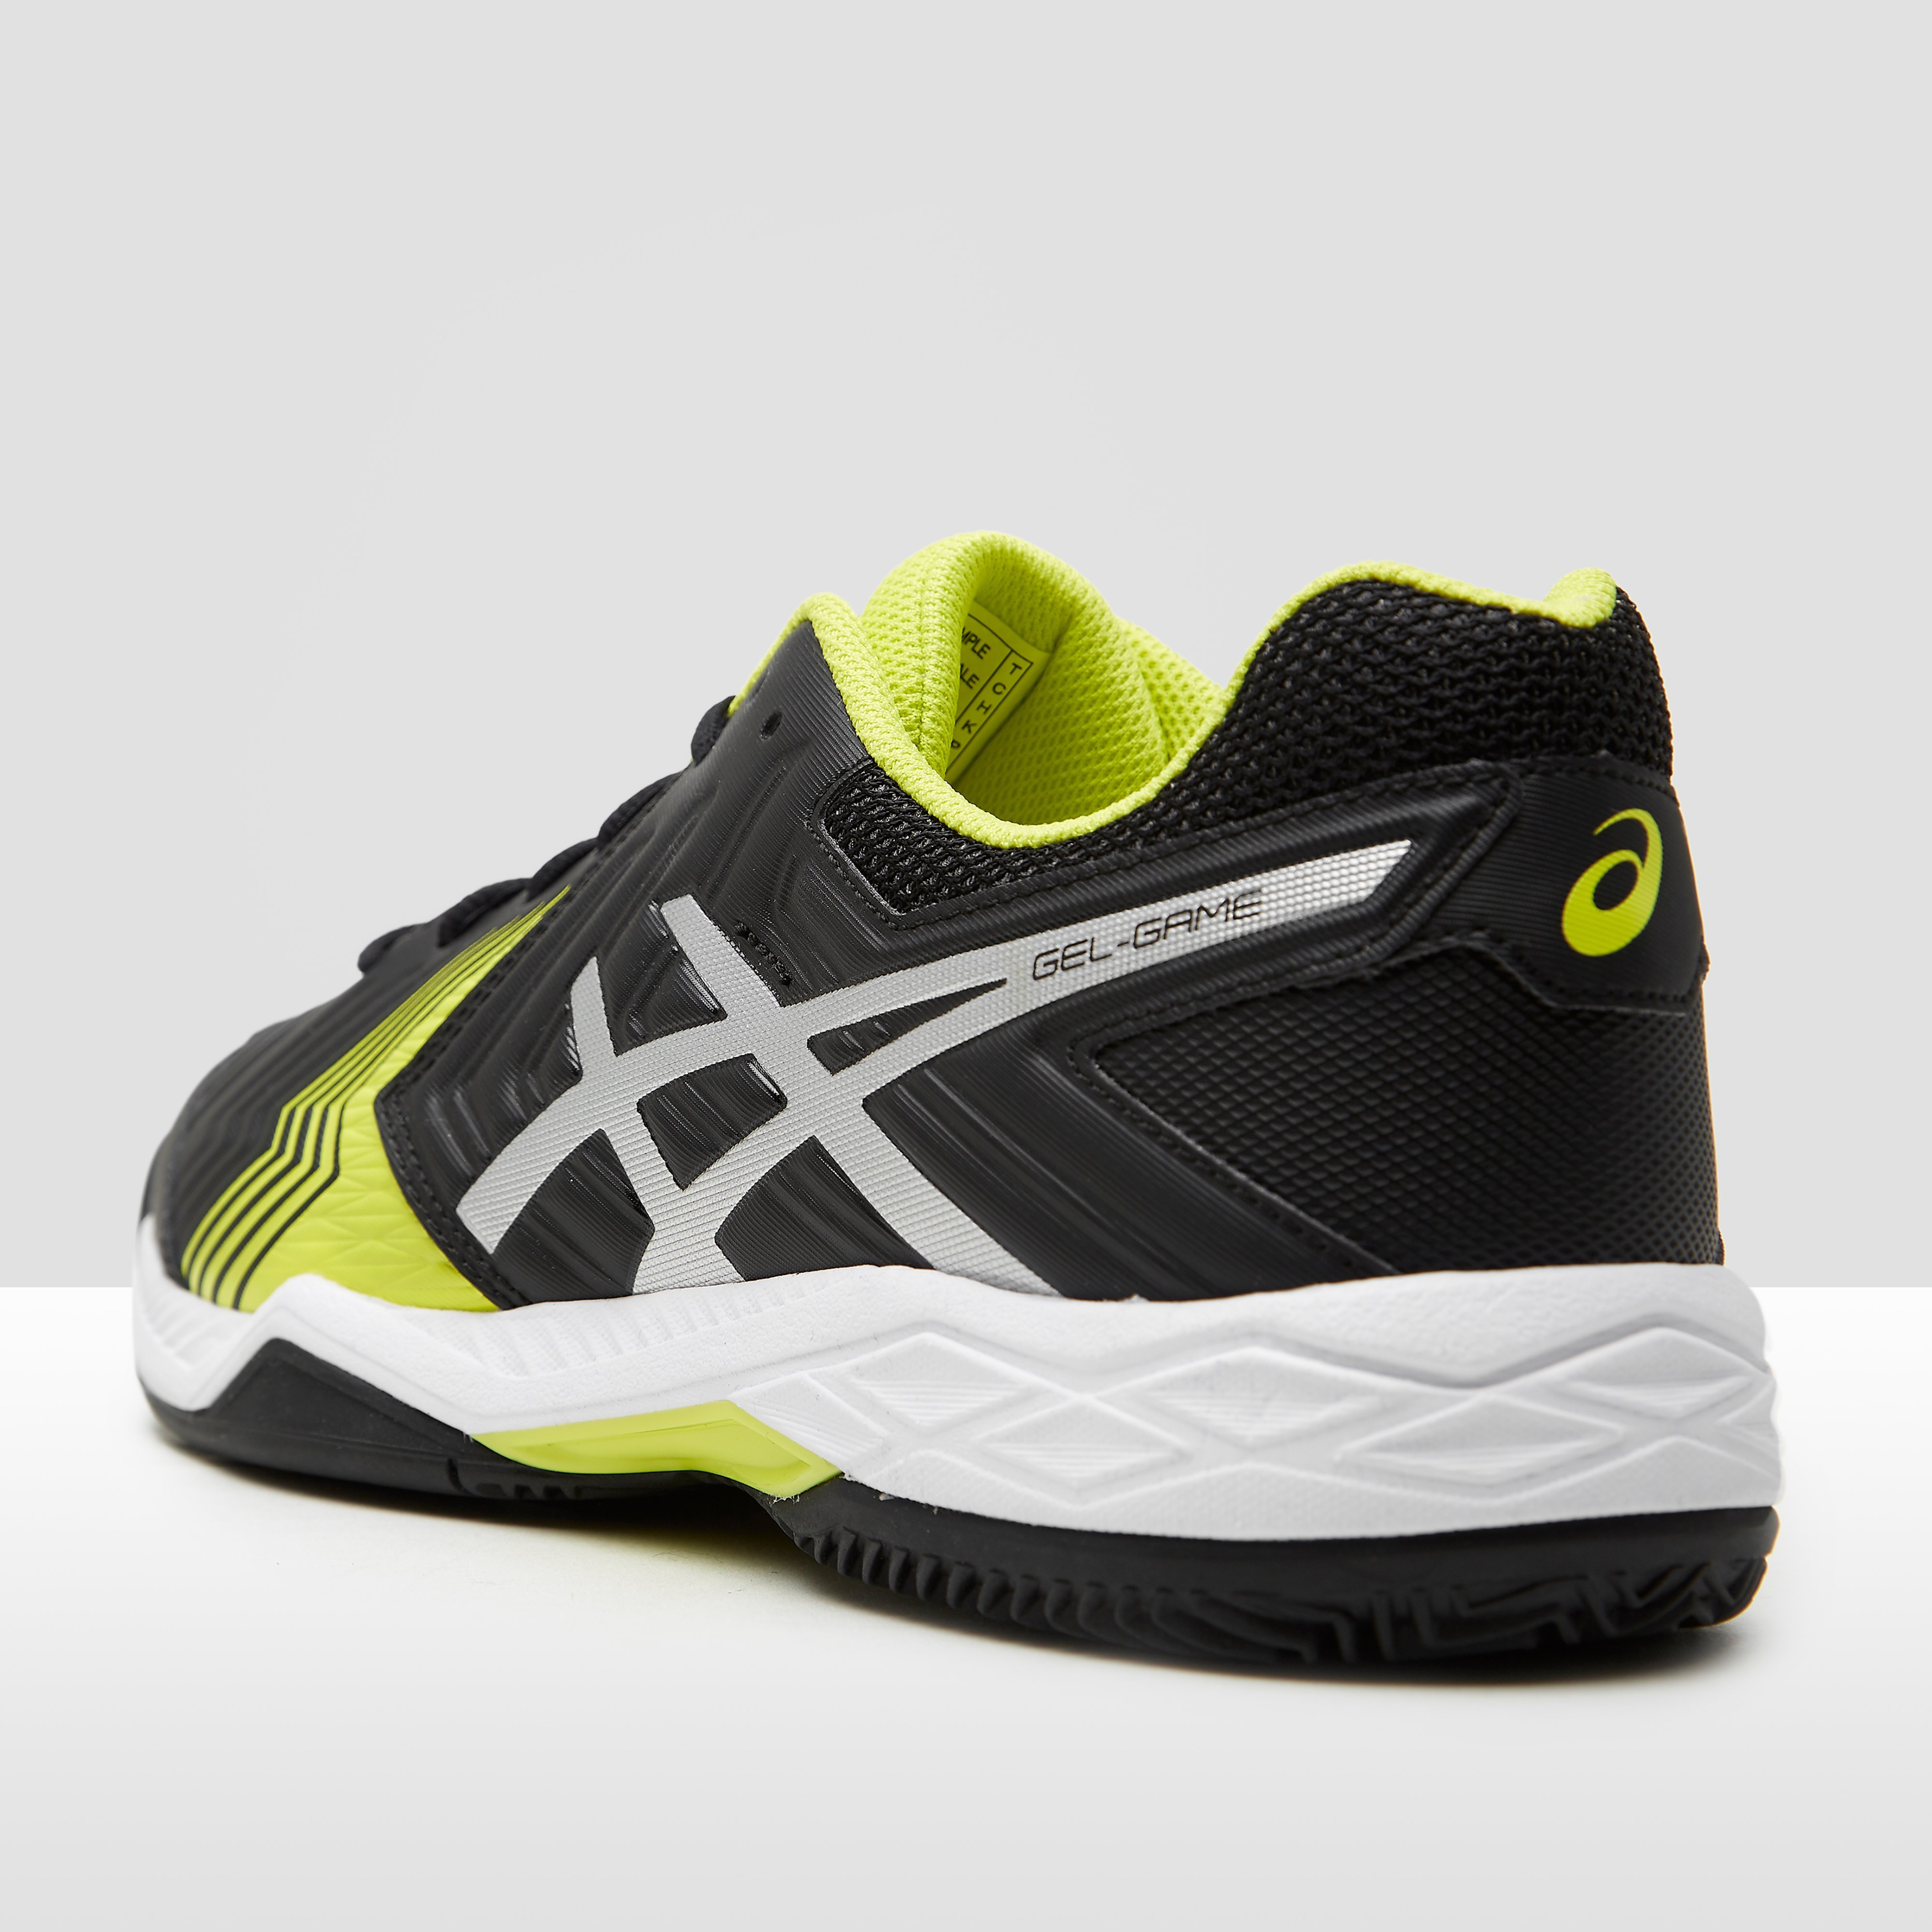 ASICS GEL-GAME 6 CLAY TENNISSCHOENEN ZWART HEREN